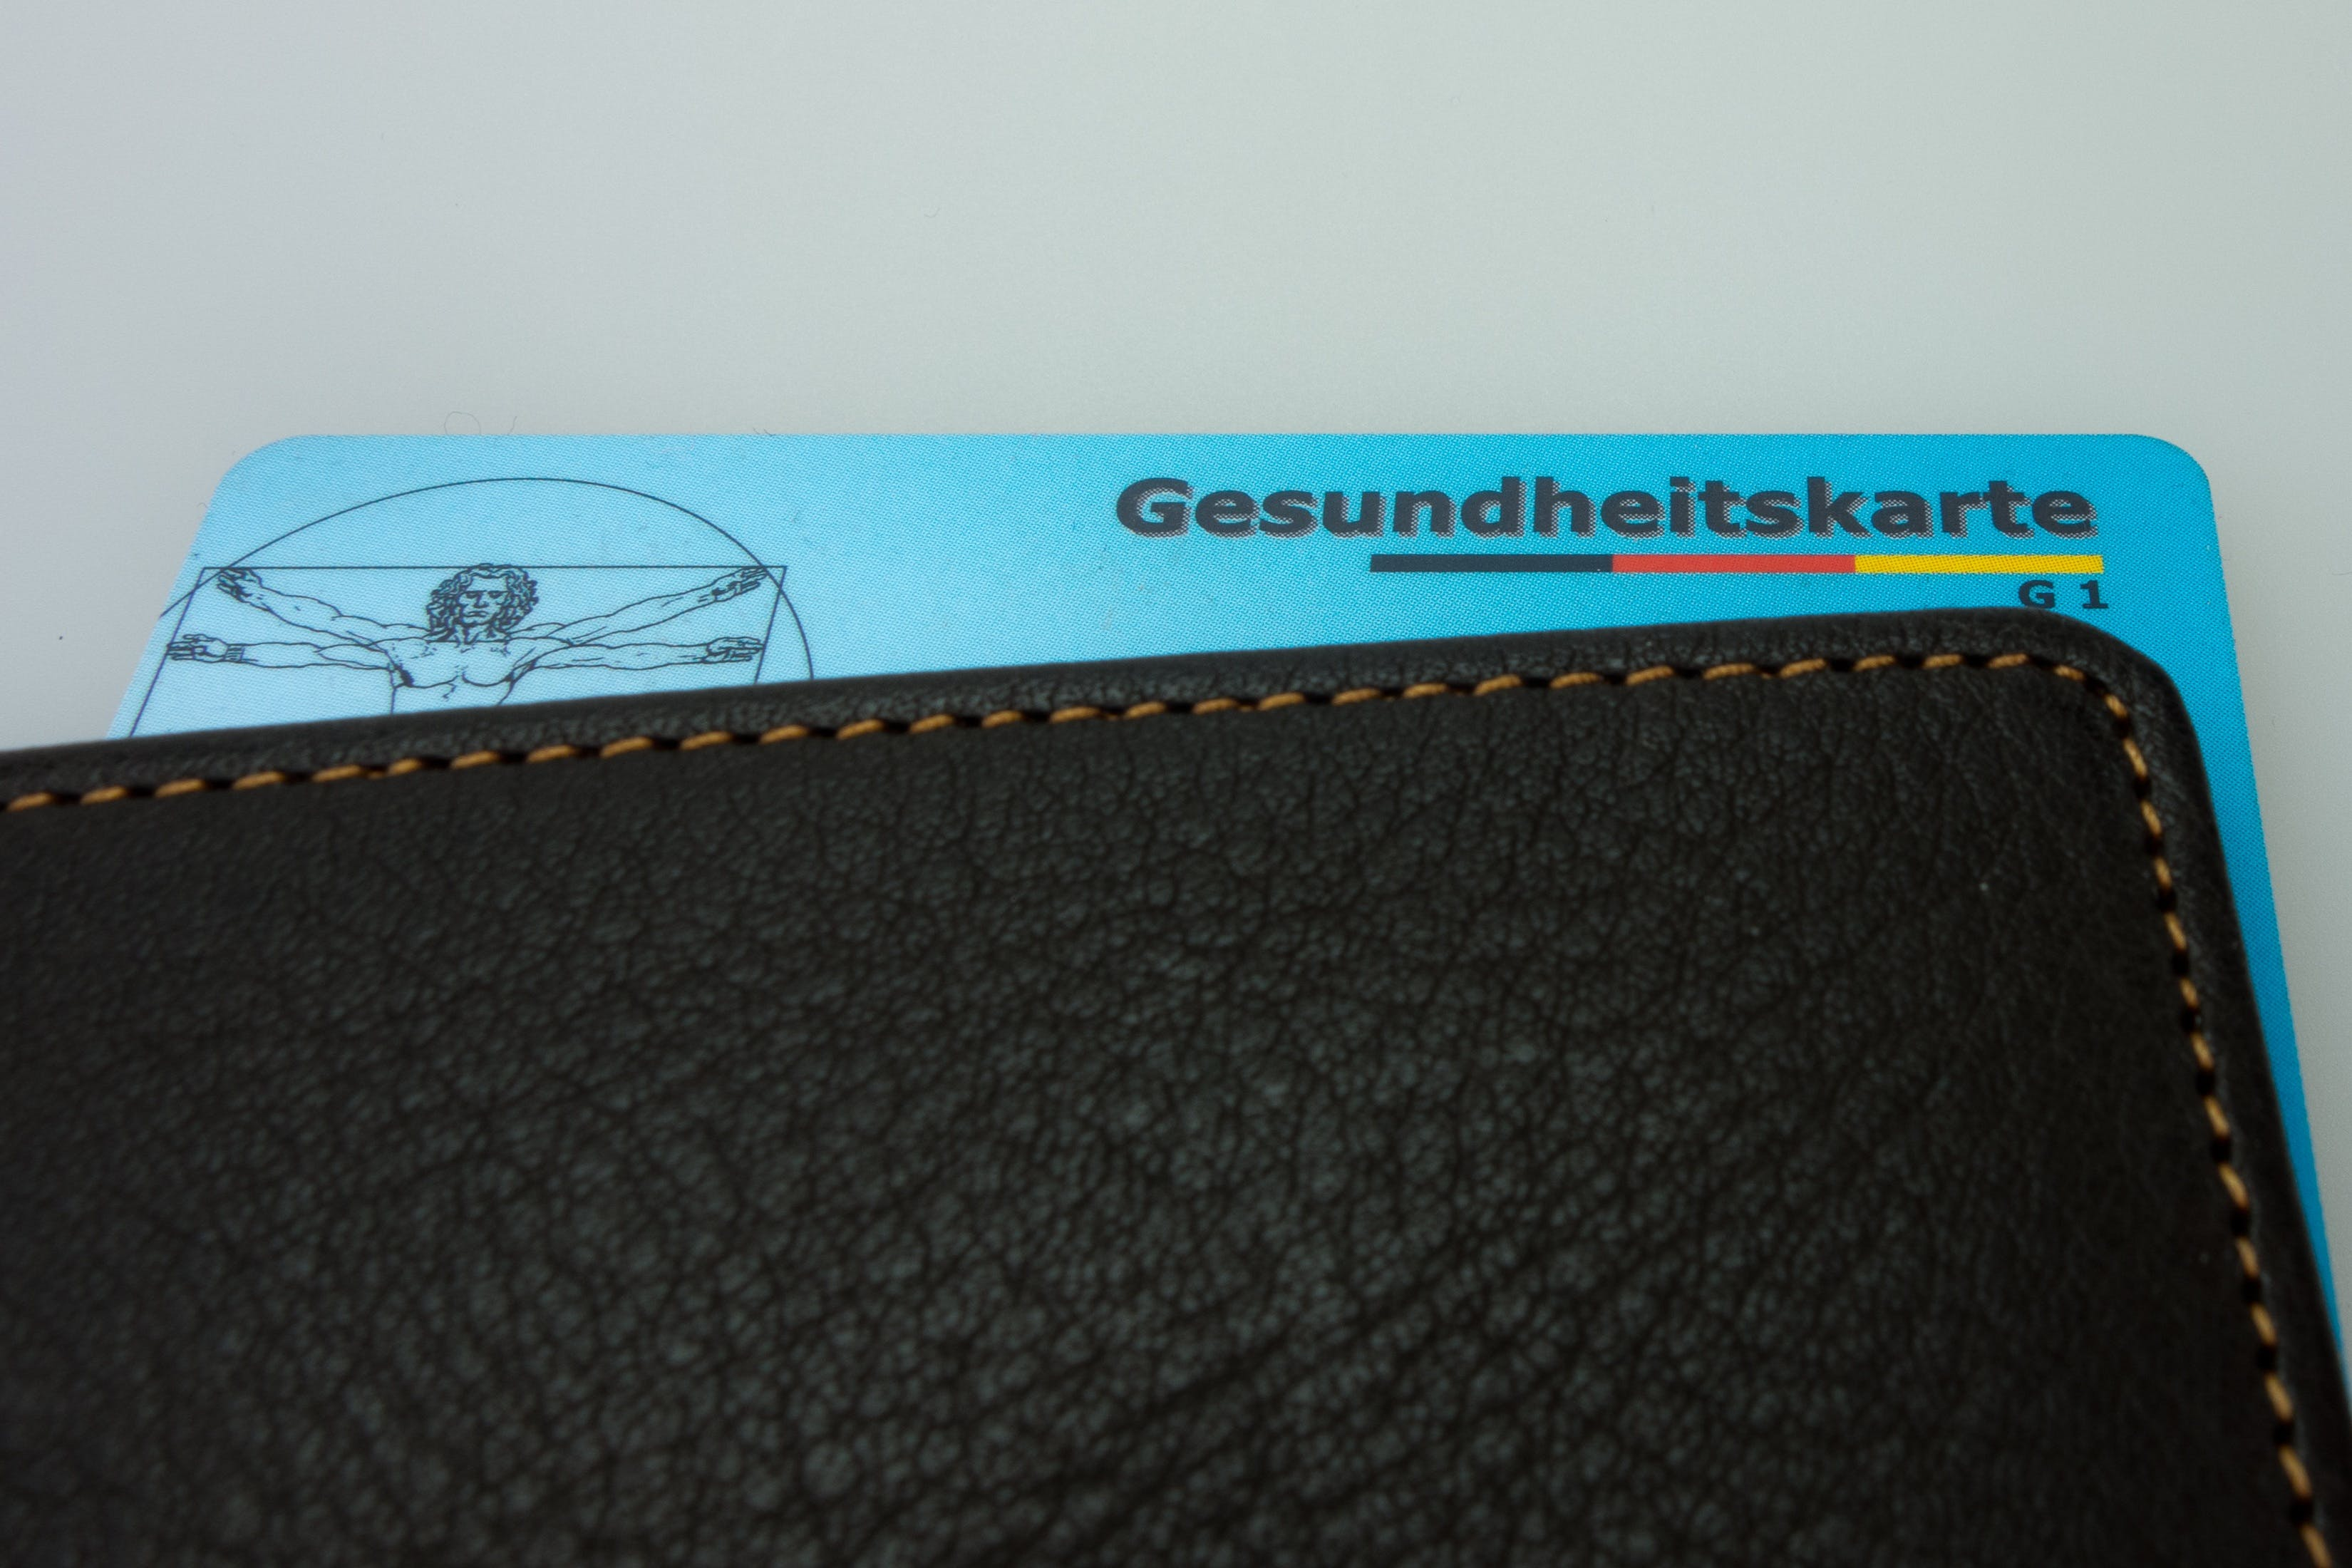 Black Leather Wallet With Gesundheitskarte Card